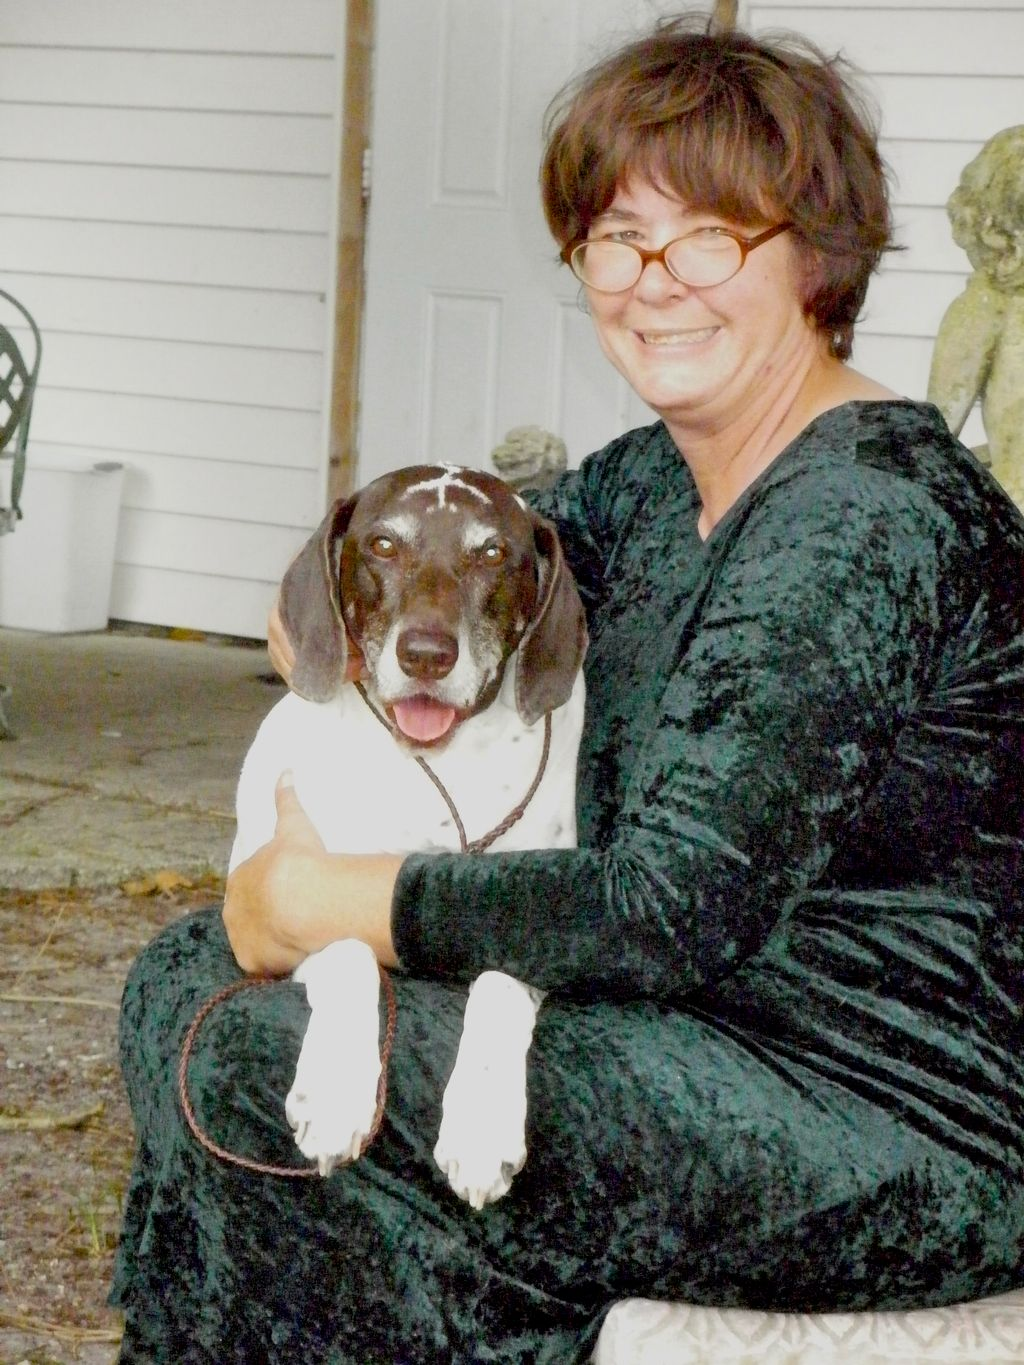 Mandy, breeder and show dogs